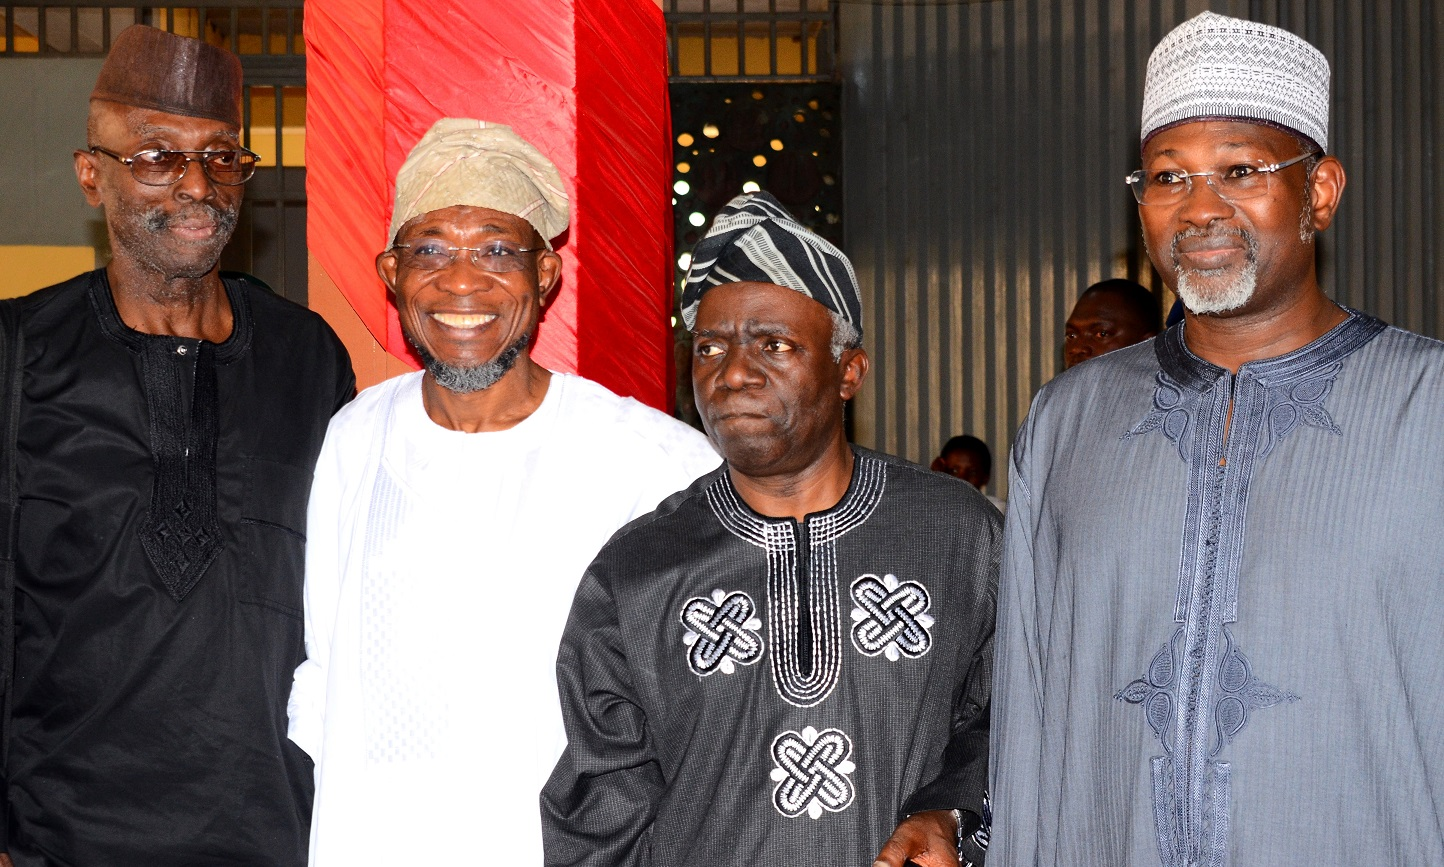 First President, Academic Staff Union of Universities {ASUU}, Professor Biodun Jeyifo, Governor State of Osun, Ogbeni Rauf Aregbesola, Chairman of the Occasion, Barrister Femi Falana (SAN), and Keynote Speaker, Professor Attahiru Jega,during the 70th Birthday of Prof. Biodun Jeyifo, at the International Conference  Centre, Obafemi Awolowo University, Ile-Ife on Thursday 20/01/2016.